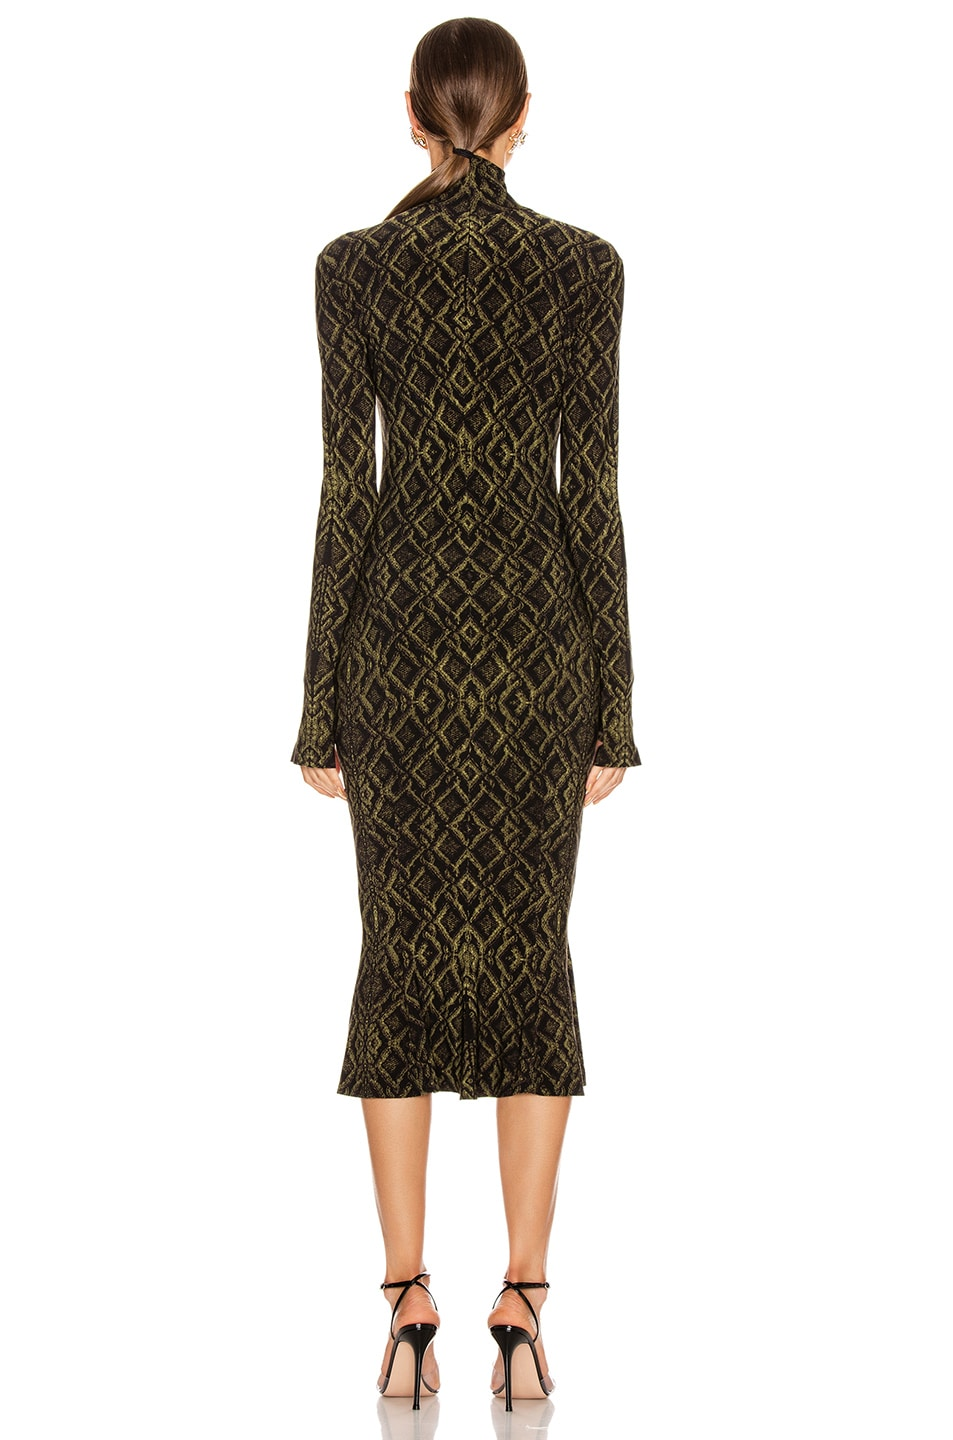 Image 3 of Norma Kamali Long Sleeve Turtleneck Fishtail Dress To Midcalf in Olive Sweater